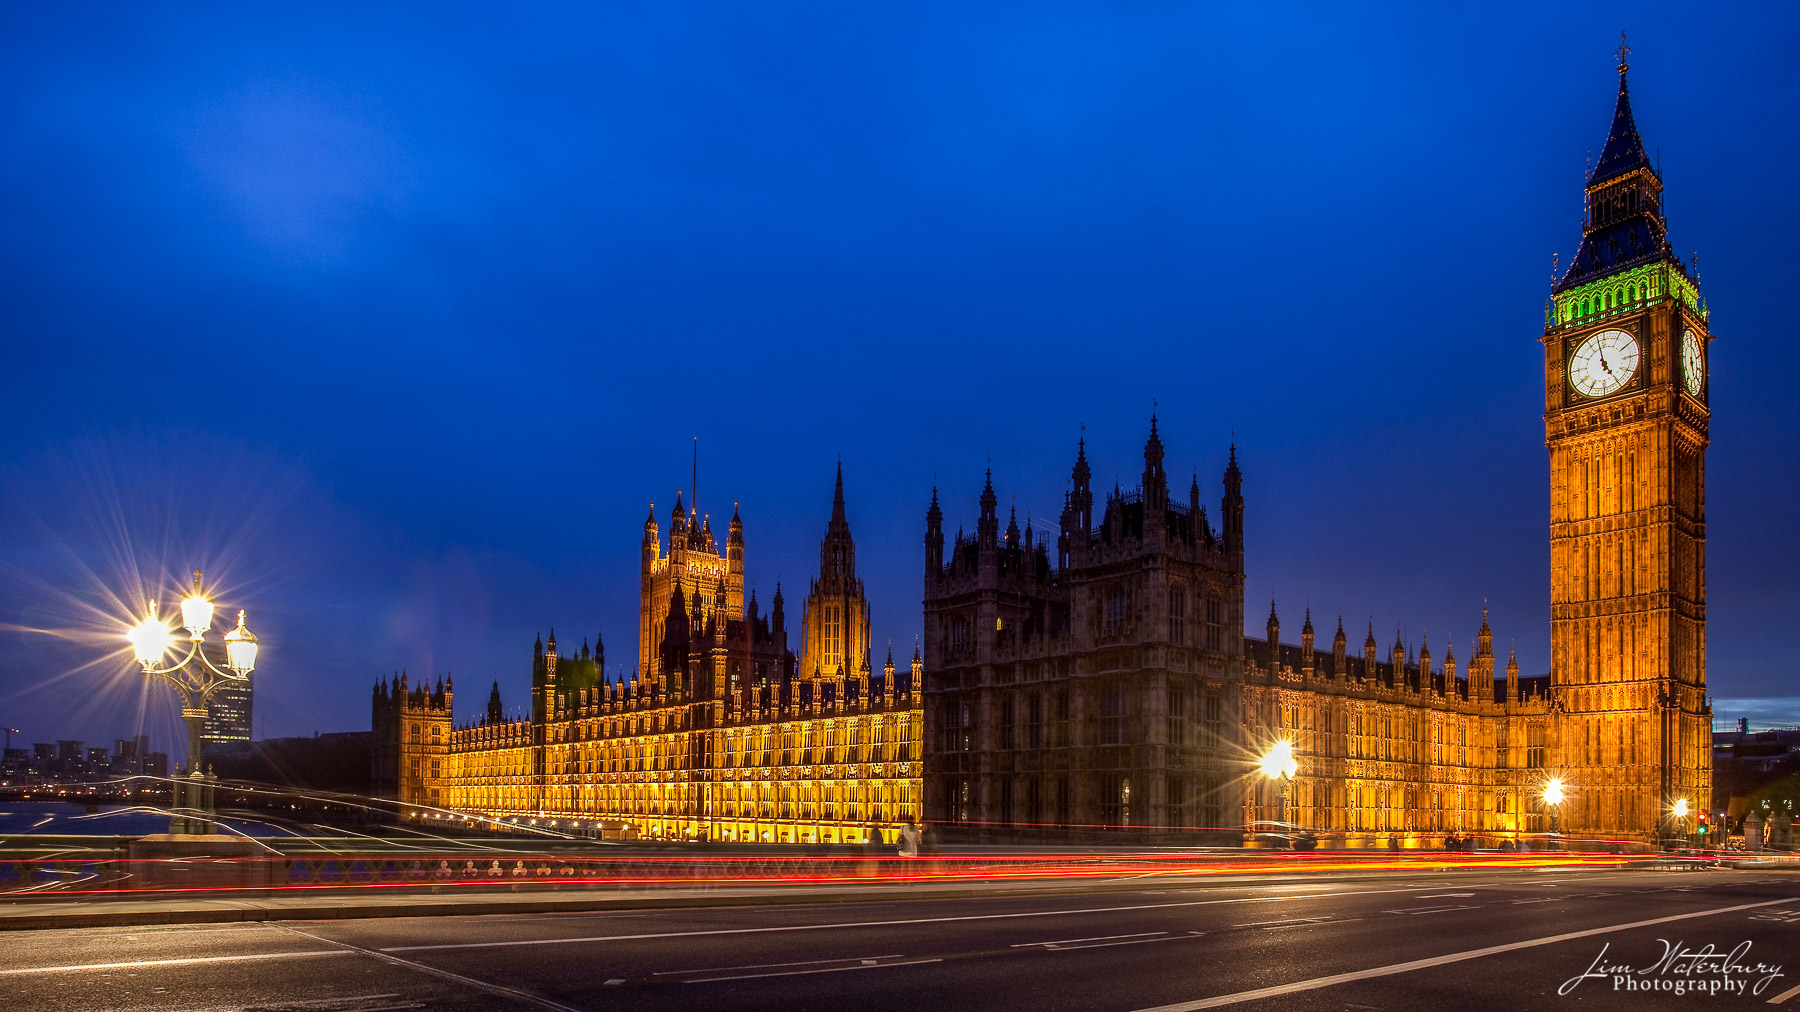 Big Ben, Westminster, Houses of Parliament, Clock Tower, night, photo